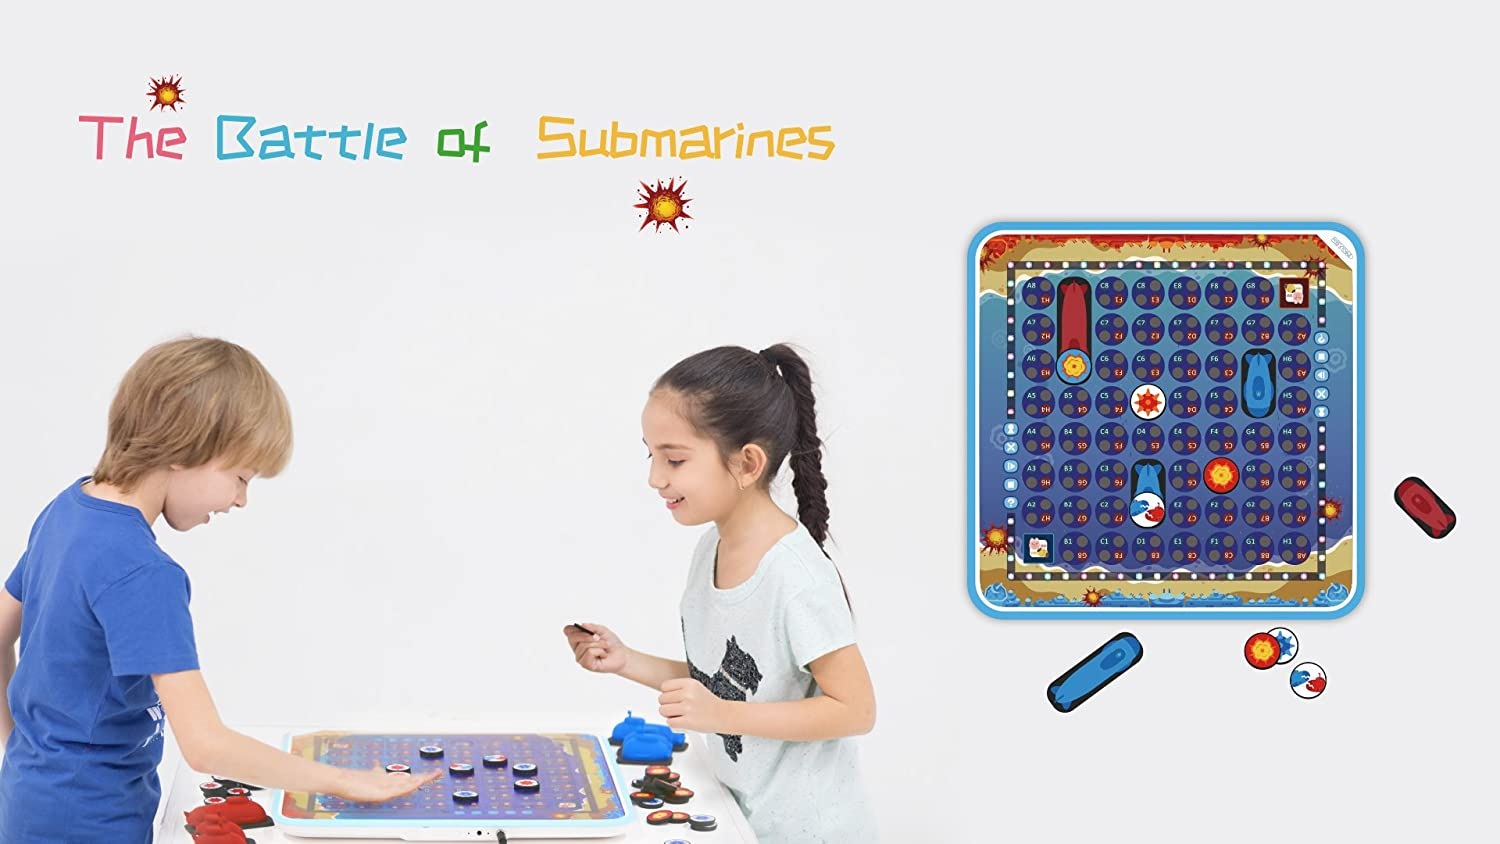 Beyond Screen Beyond Tablet The Battle of Submarines Game